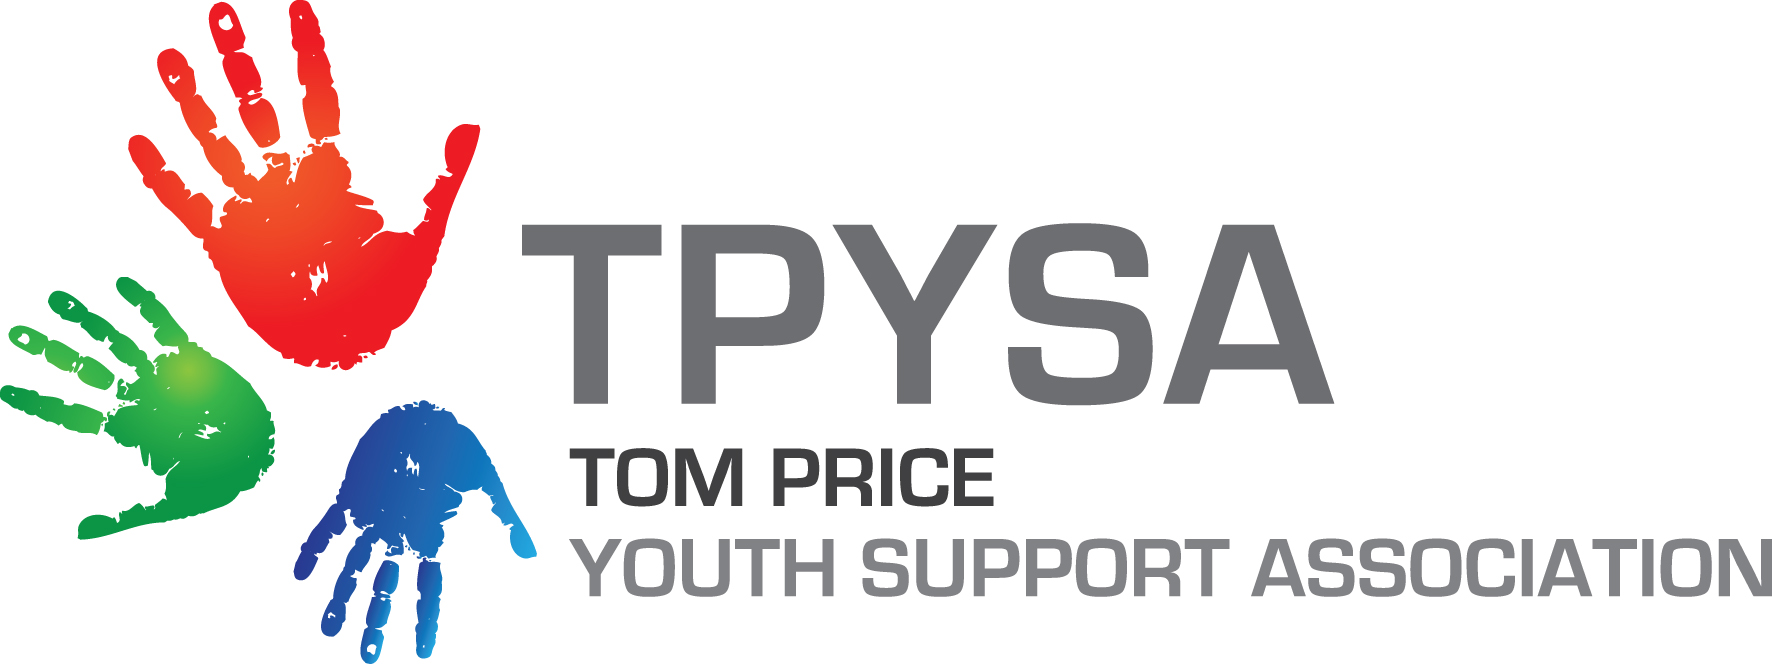 Tom Price Youth Support Association